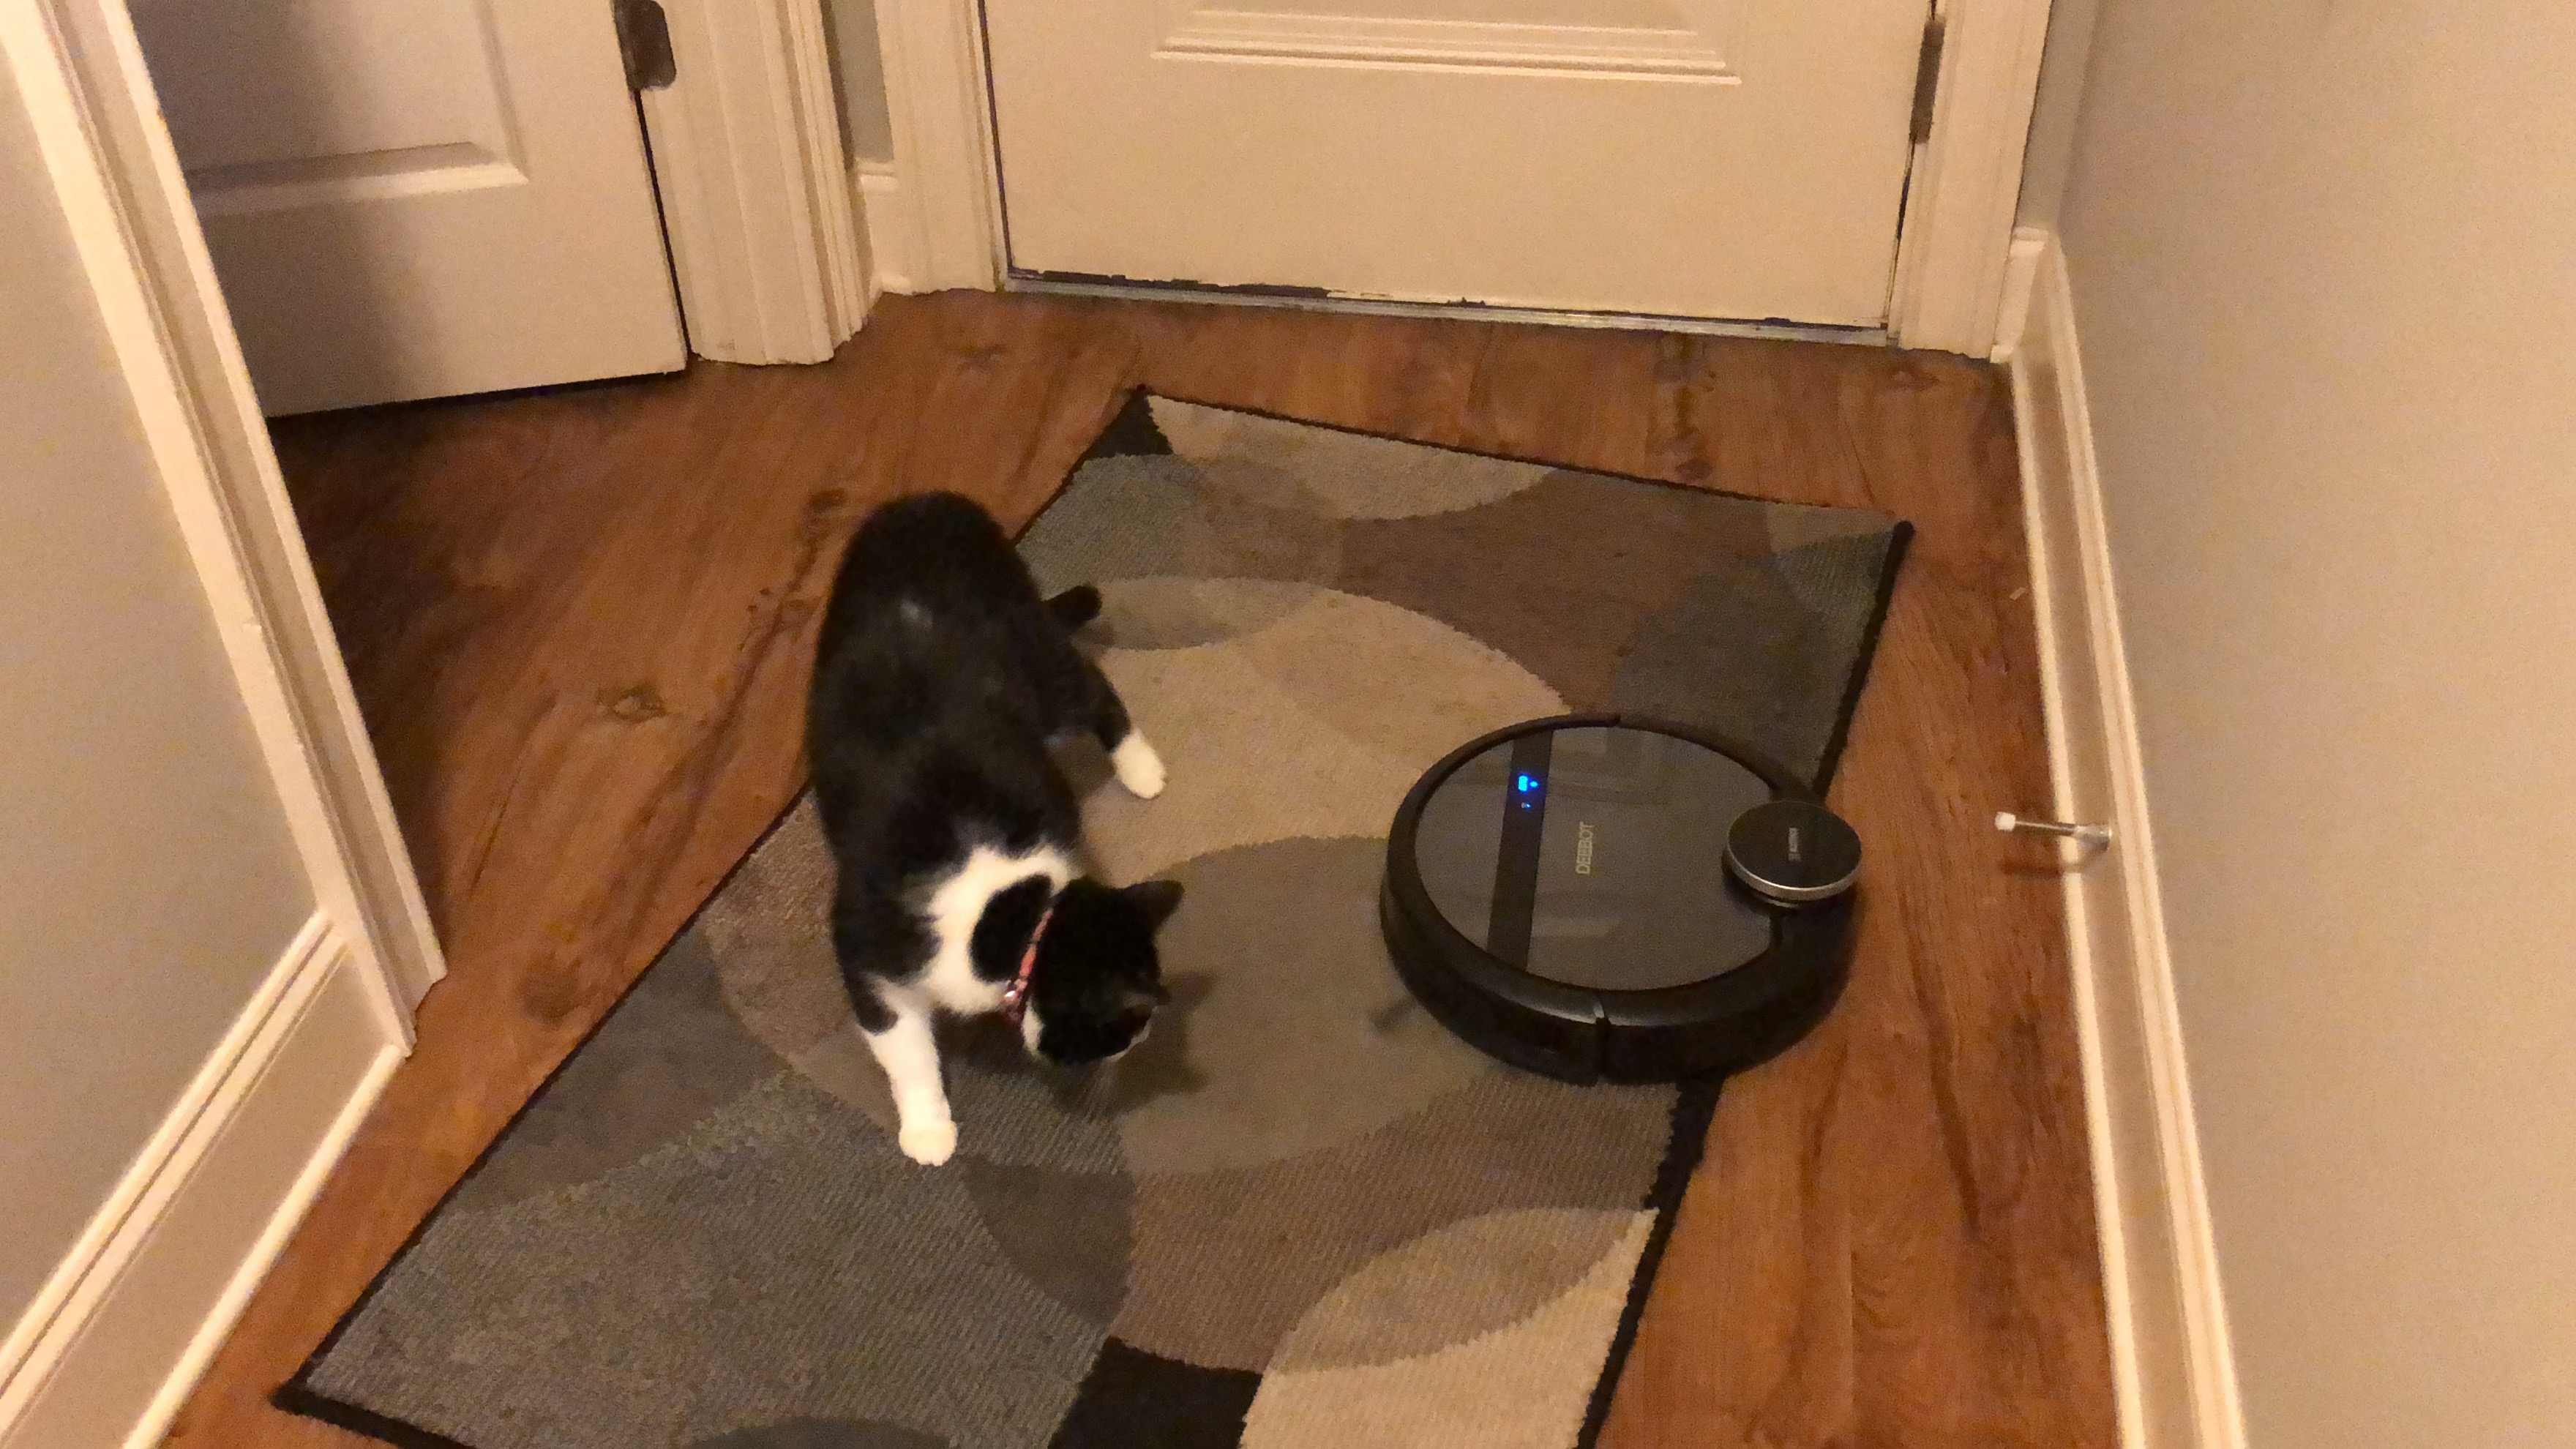 Review: The Ecovacs DEEBOT 901 - Intelligent Robot Vacuuming at a Reasonable Price